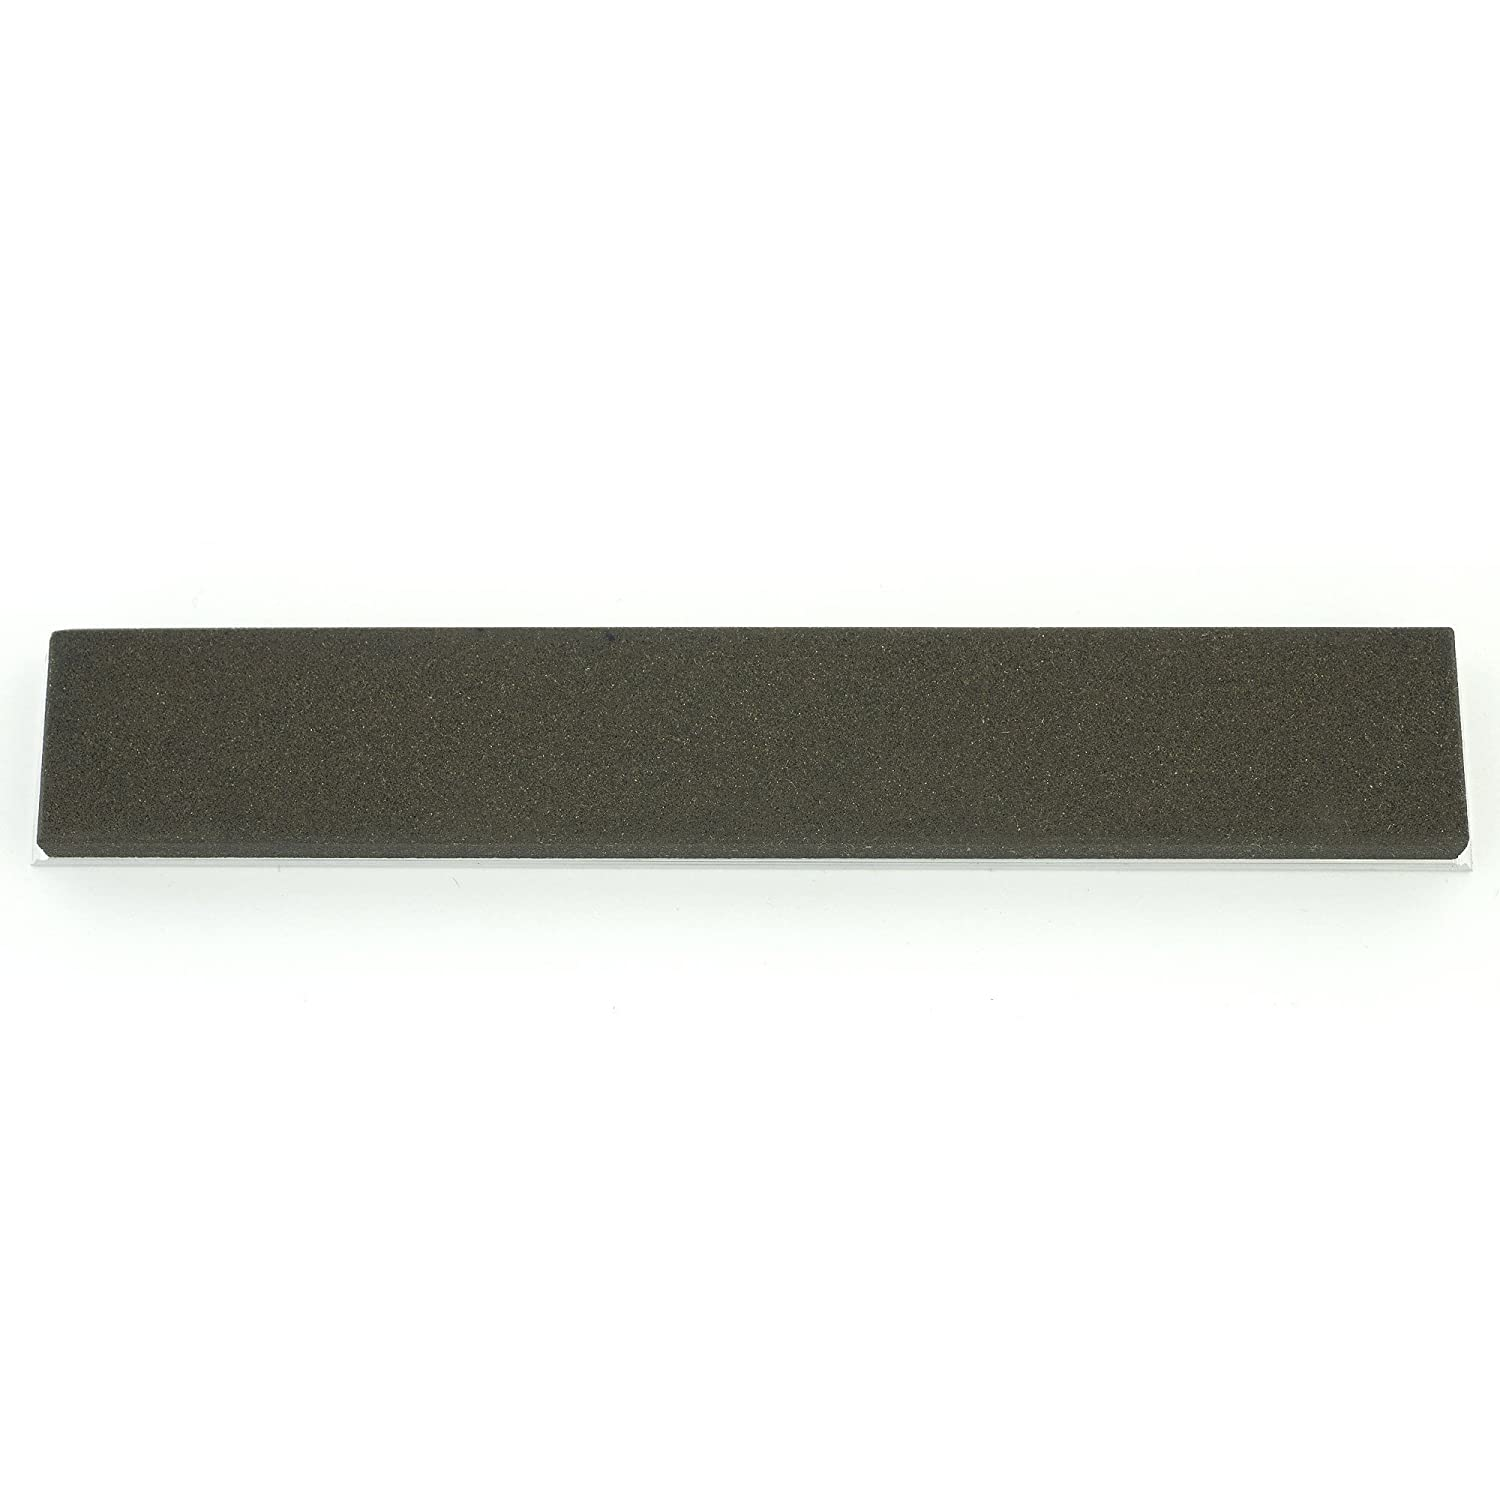 India Coarse 6 x 1 x 0.25 Sharpening Oilstone with Aluminum Mounting for Edge Pro Gritomatic